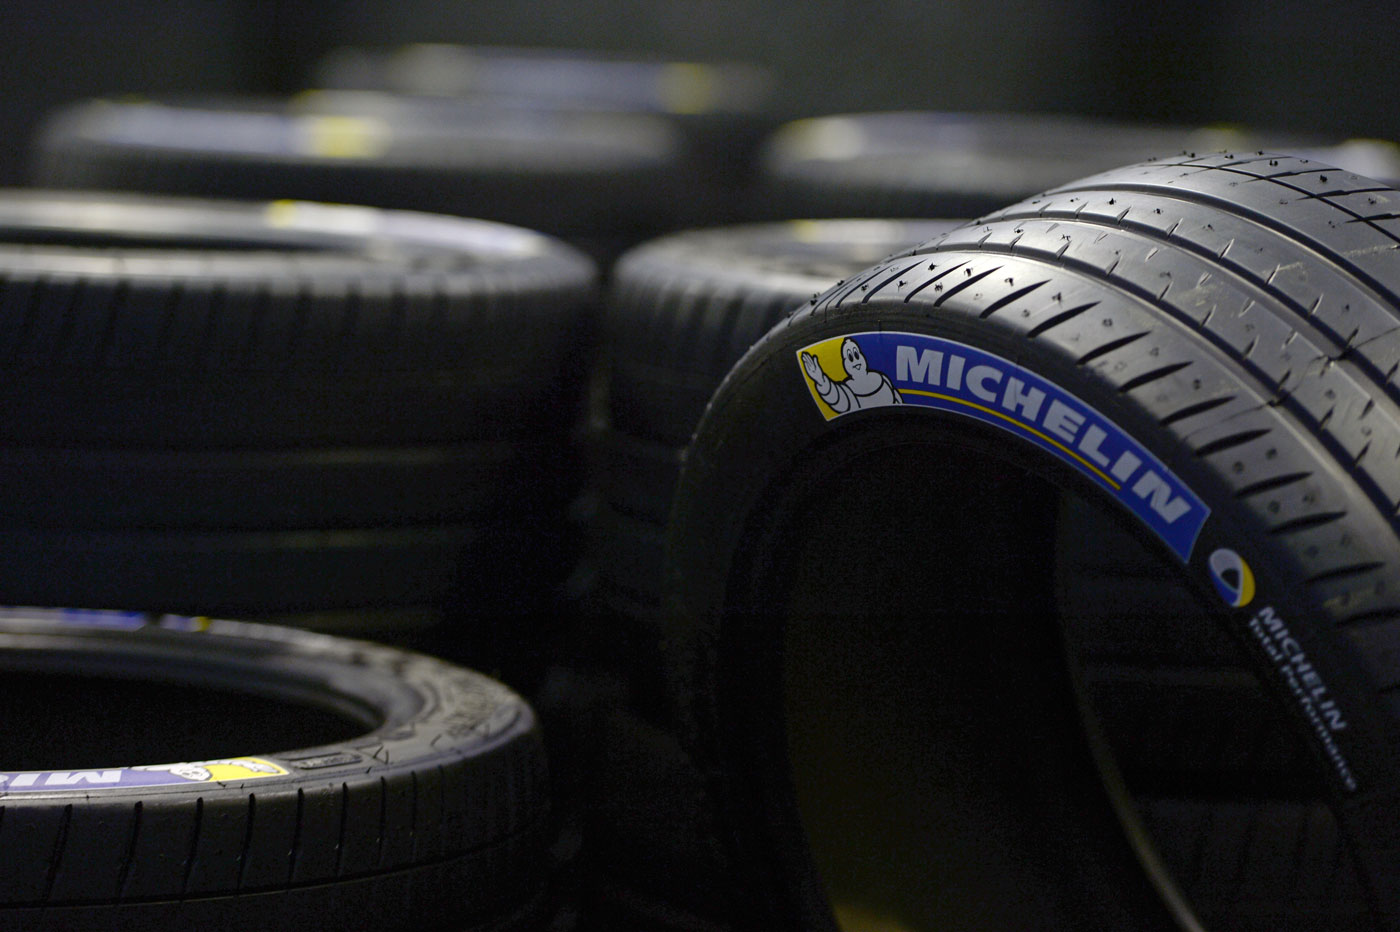 Michelin and FIA Formula E